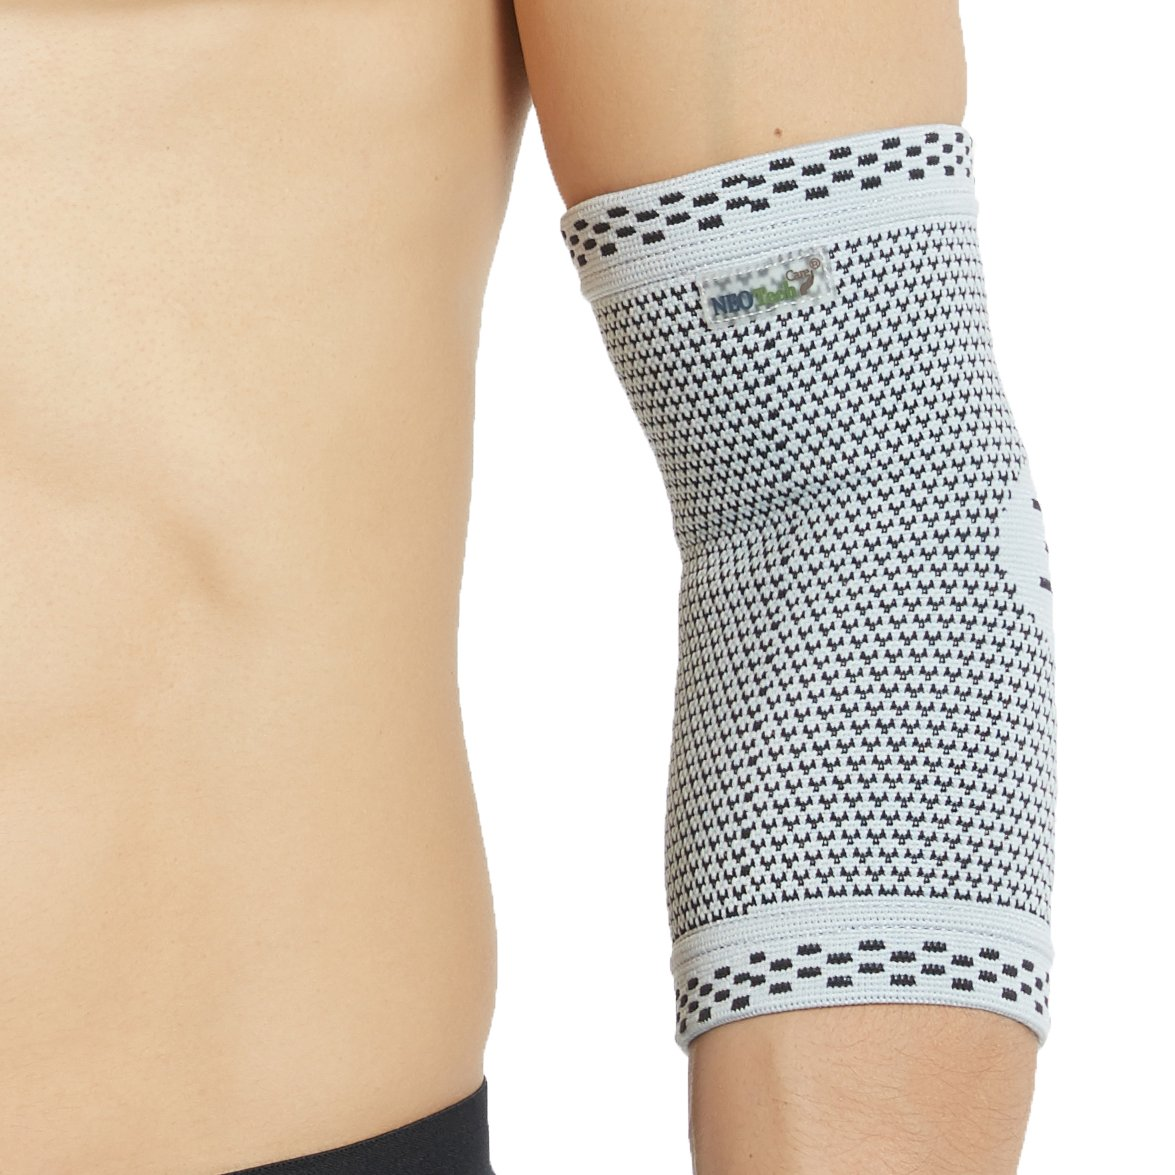 Neotech Care Elbow Support Sleeve - Bamboo Fiber 3D Weaving Knitted Fabric - Elastic & Breathable - for Golf, Tennis, Sports - Right or Left Arm - Grey Color (Large Size)